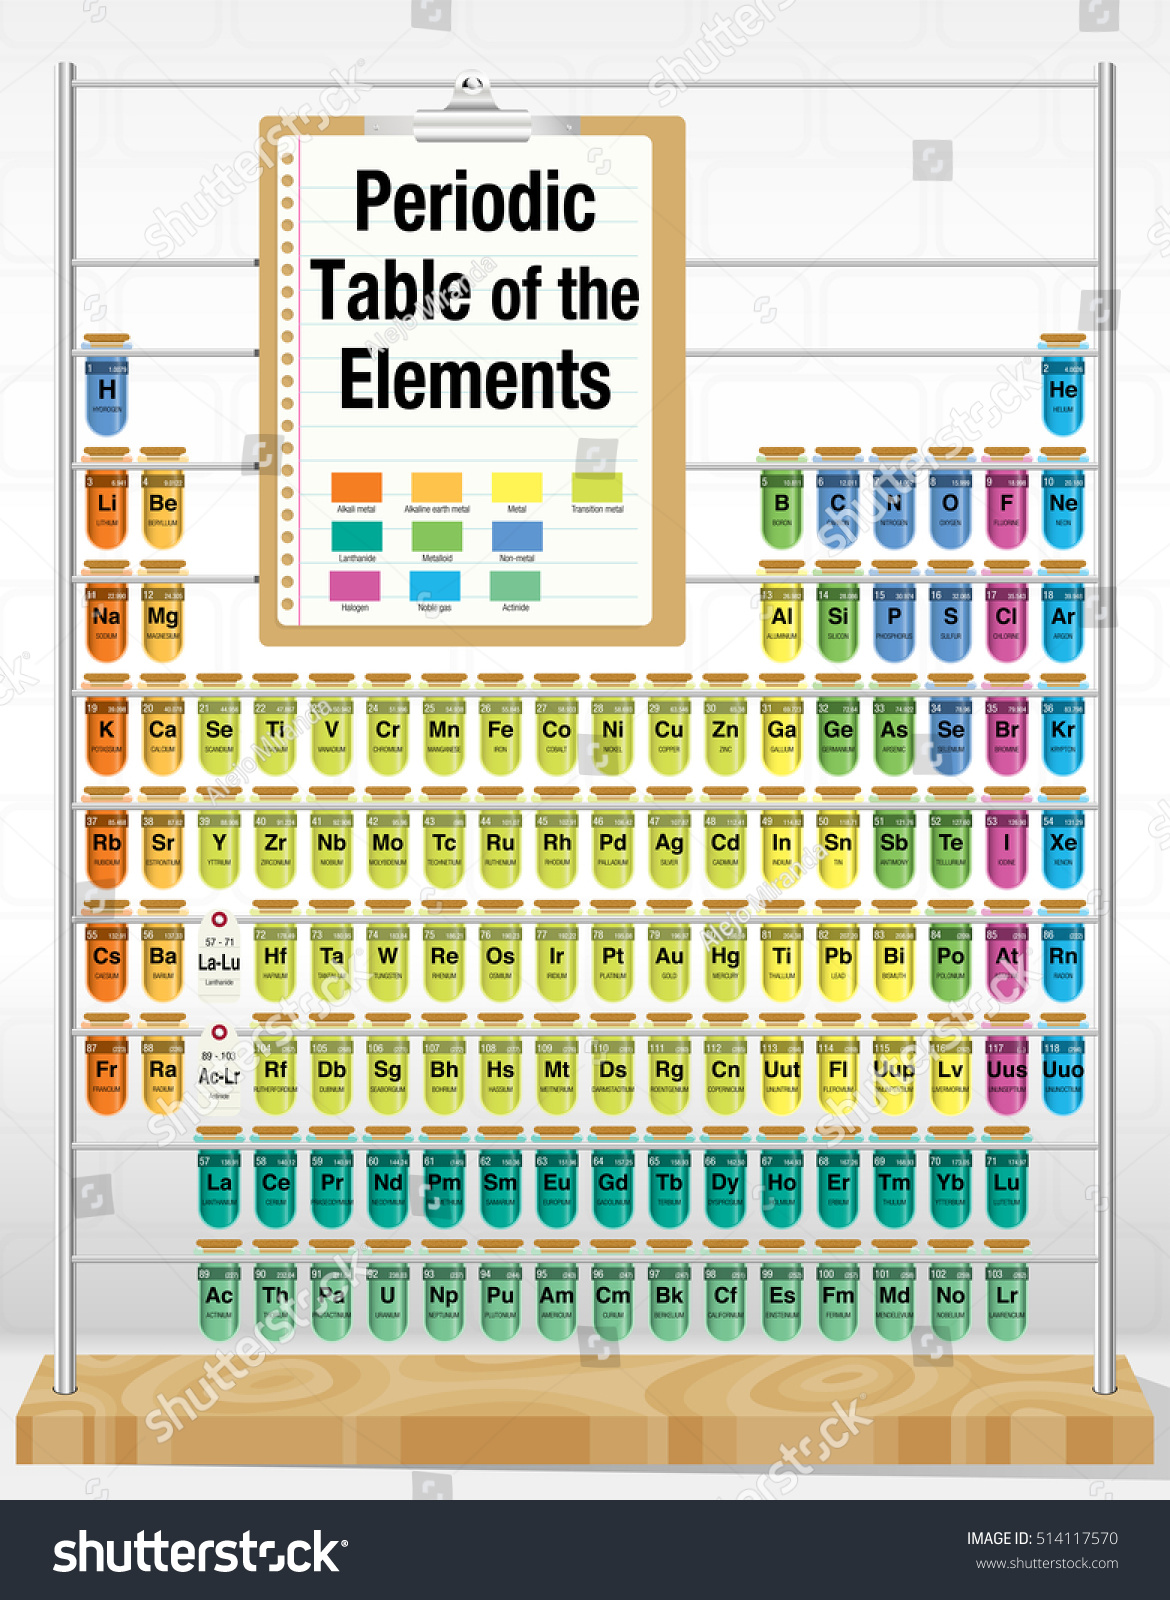 Periodic table elements consisting test tubes stock vector periodic table of the elements consisting of test tubes with the names and number of each gamestrikefo Gallery